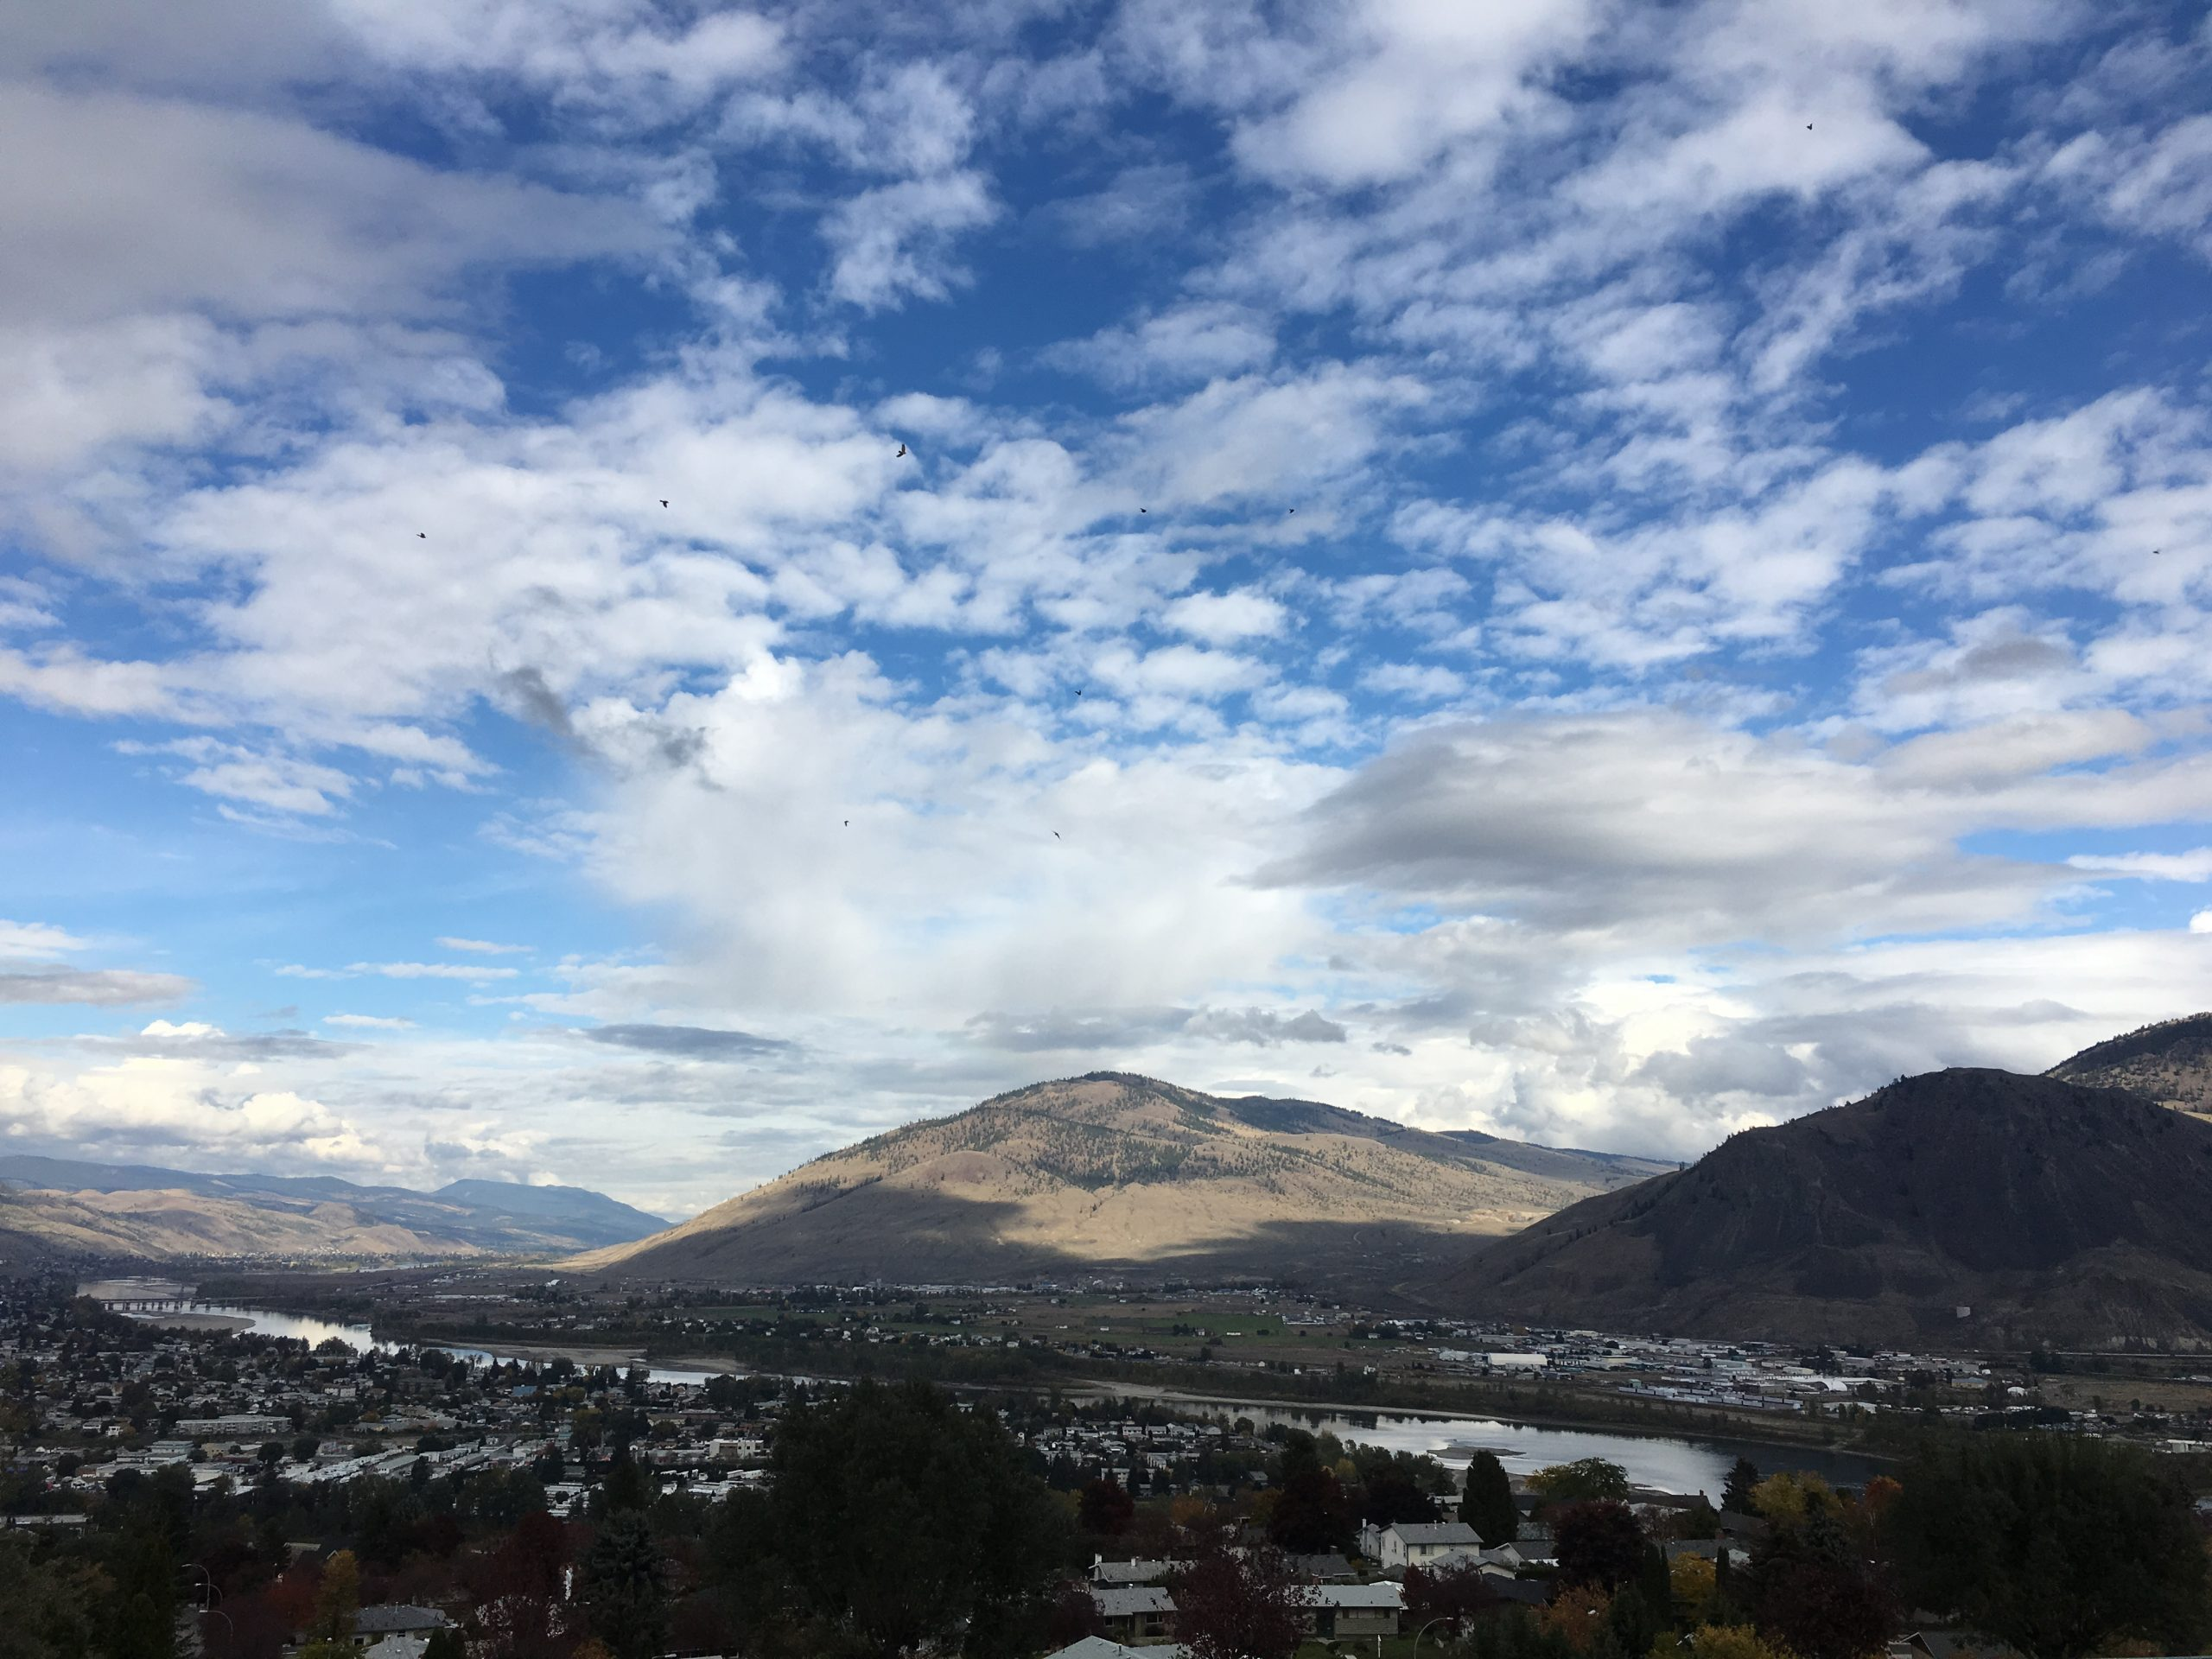 So far it looks like the Kamloops area may dodge the flooding bullet